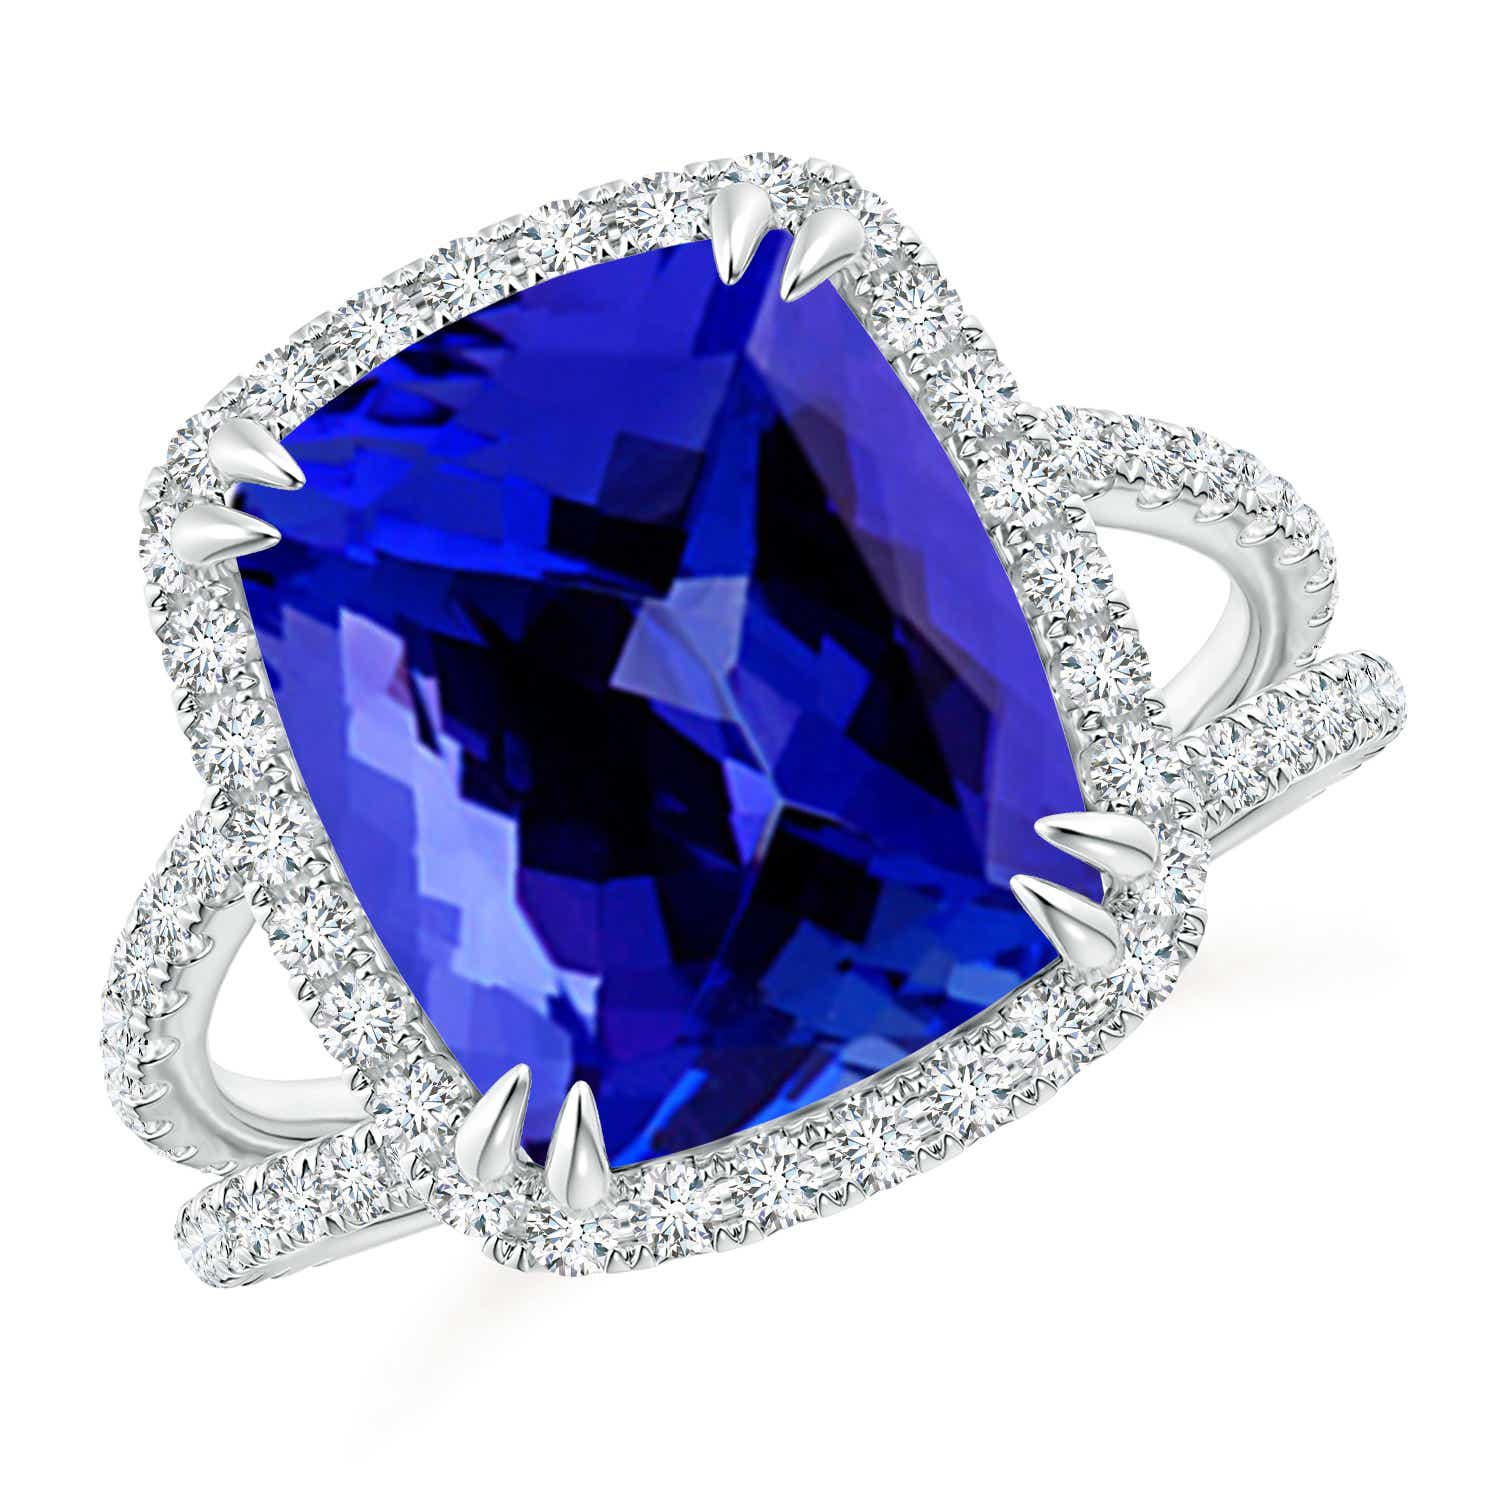 Vintage Tanzanite Split Shank Ring with Diamond Halo - Angara.com